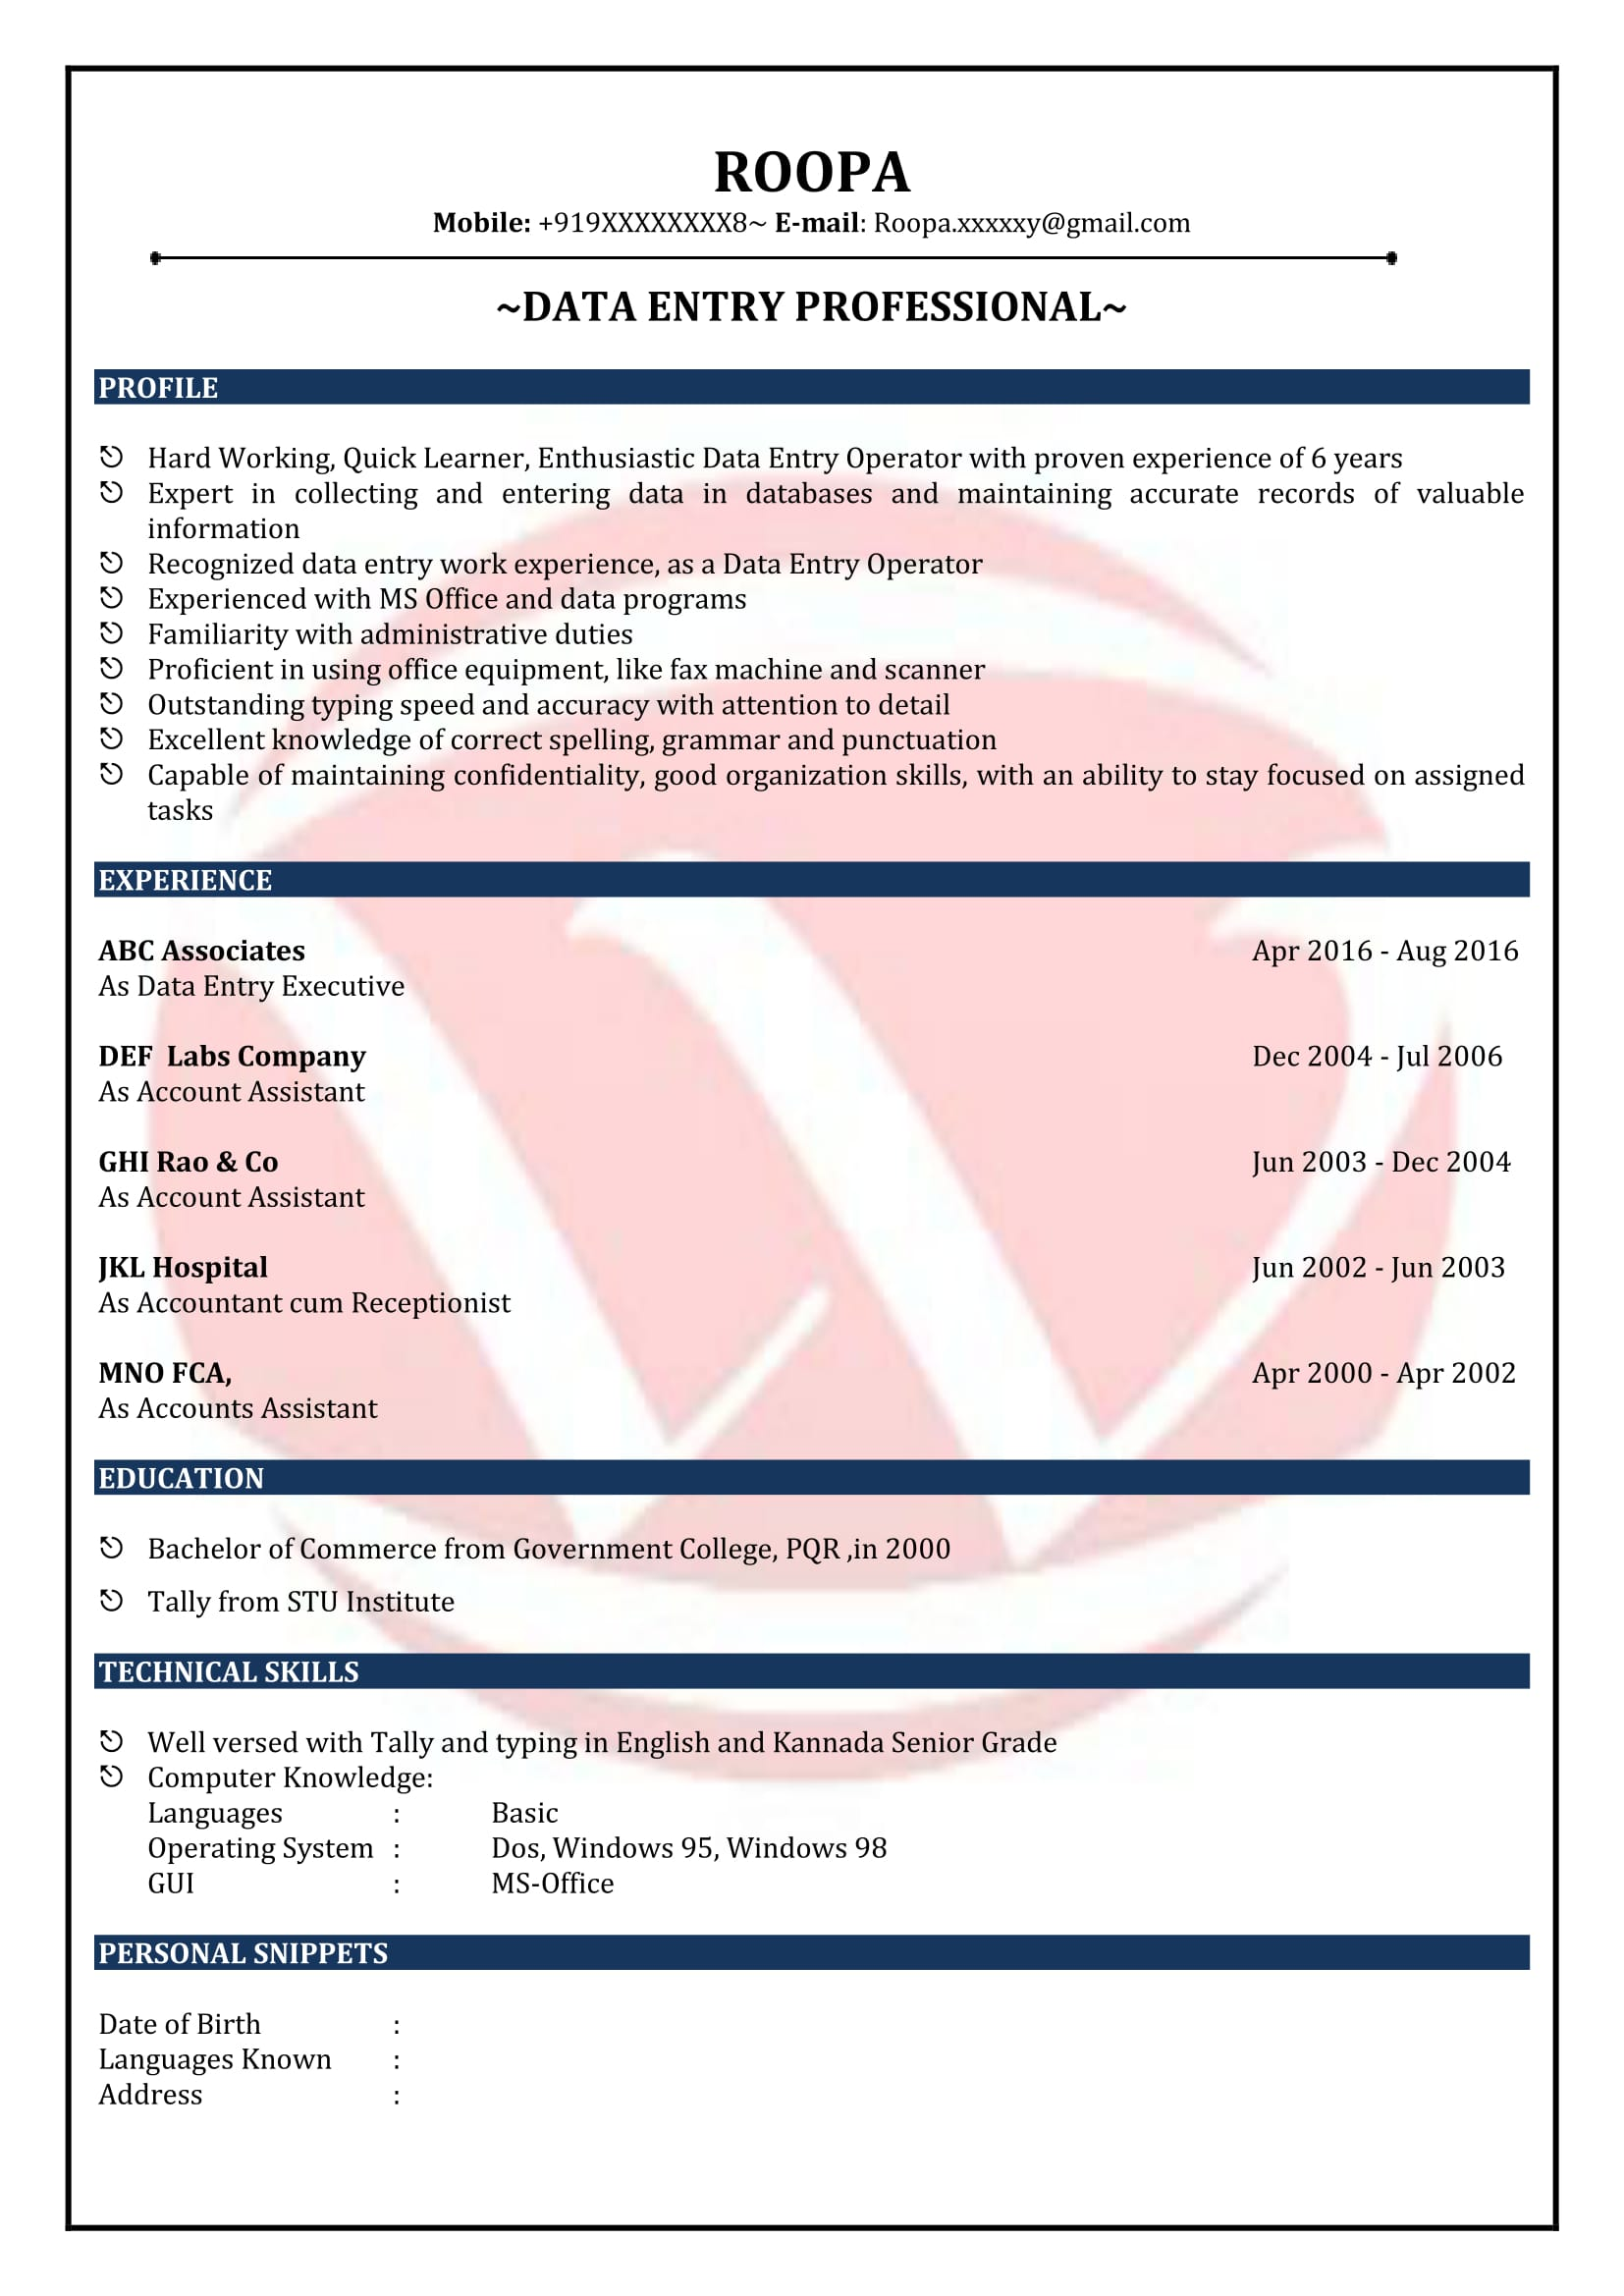 data entry sample resumes resume format templates for fresher leadership position Resume Sample Resume For Data Entry Fresher